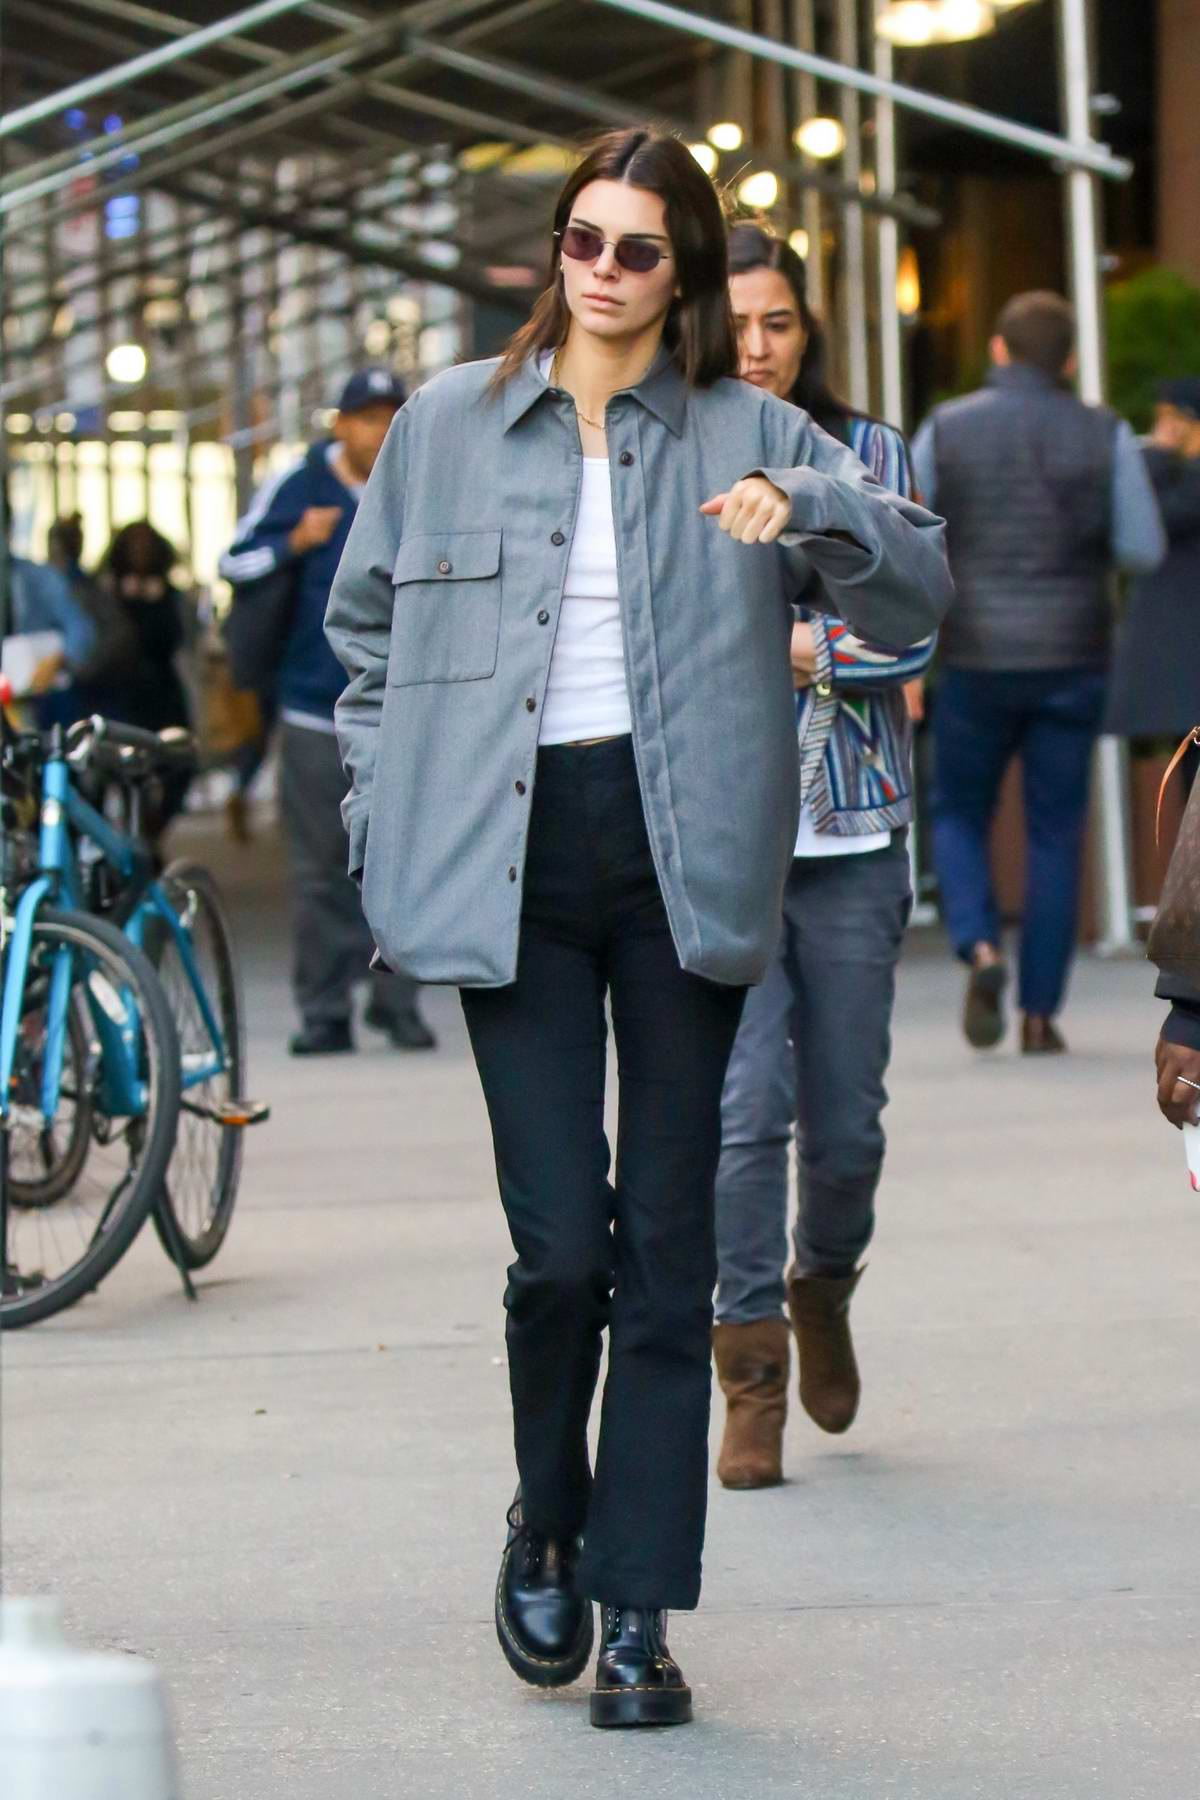 Kendall Jenner keeps it stylish in a work jacket paired with a white top and black pants as she steps out in New York City